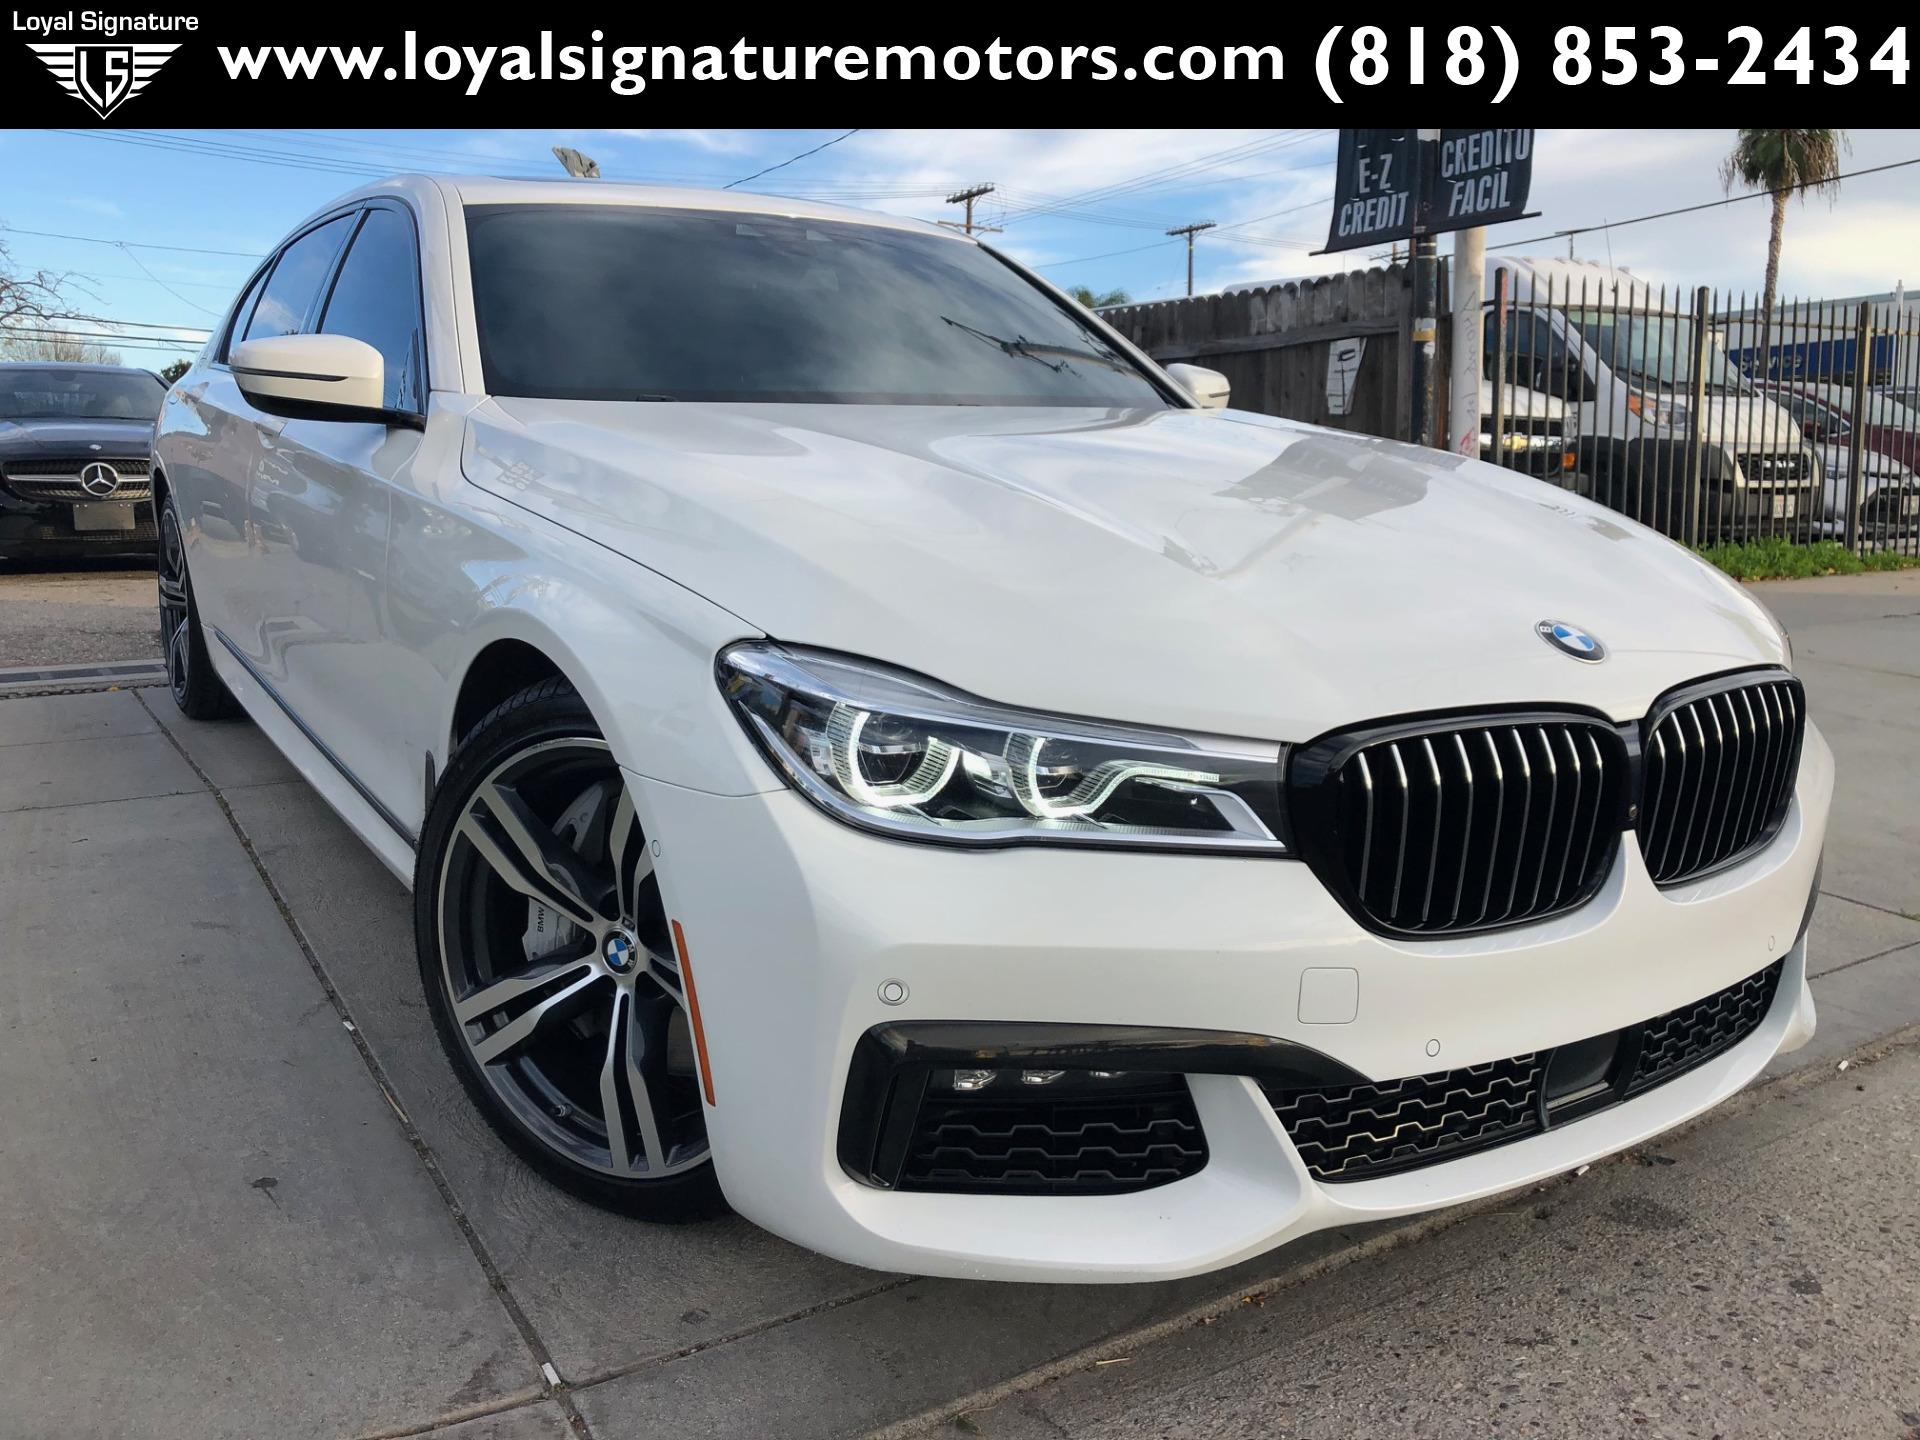 Used 2019 BMW 7 Series 750i | Van Nuys, CA